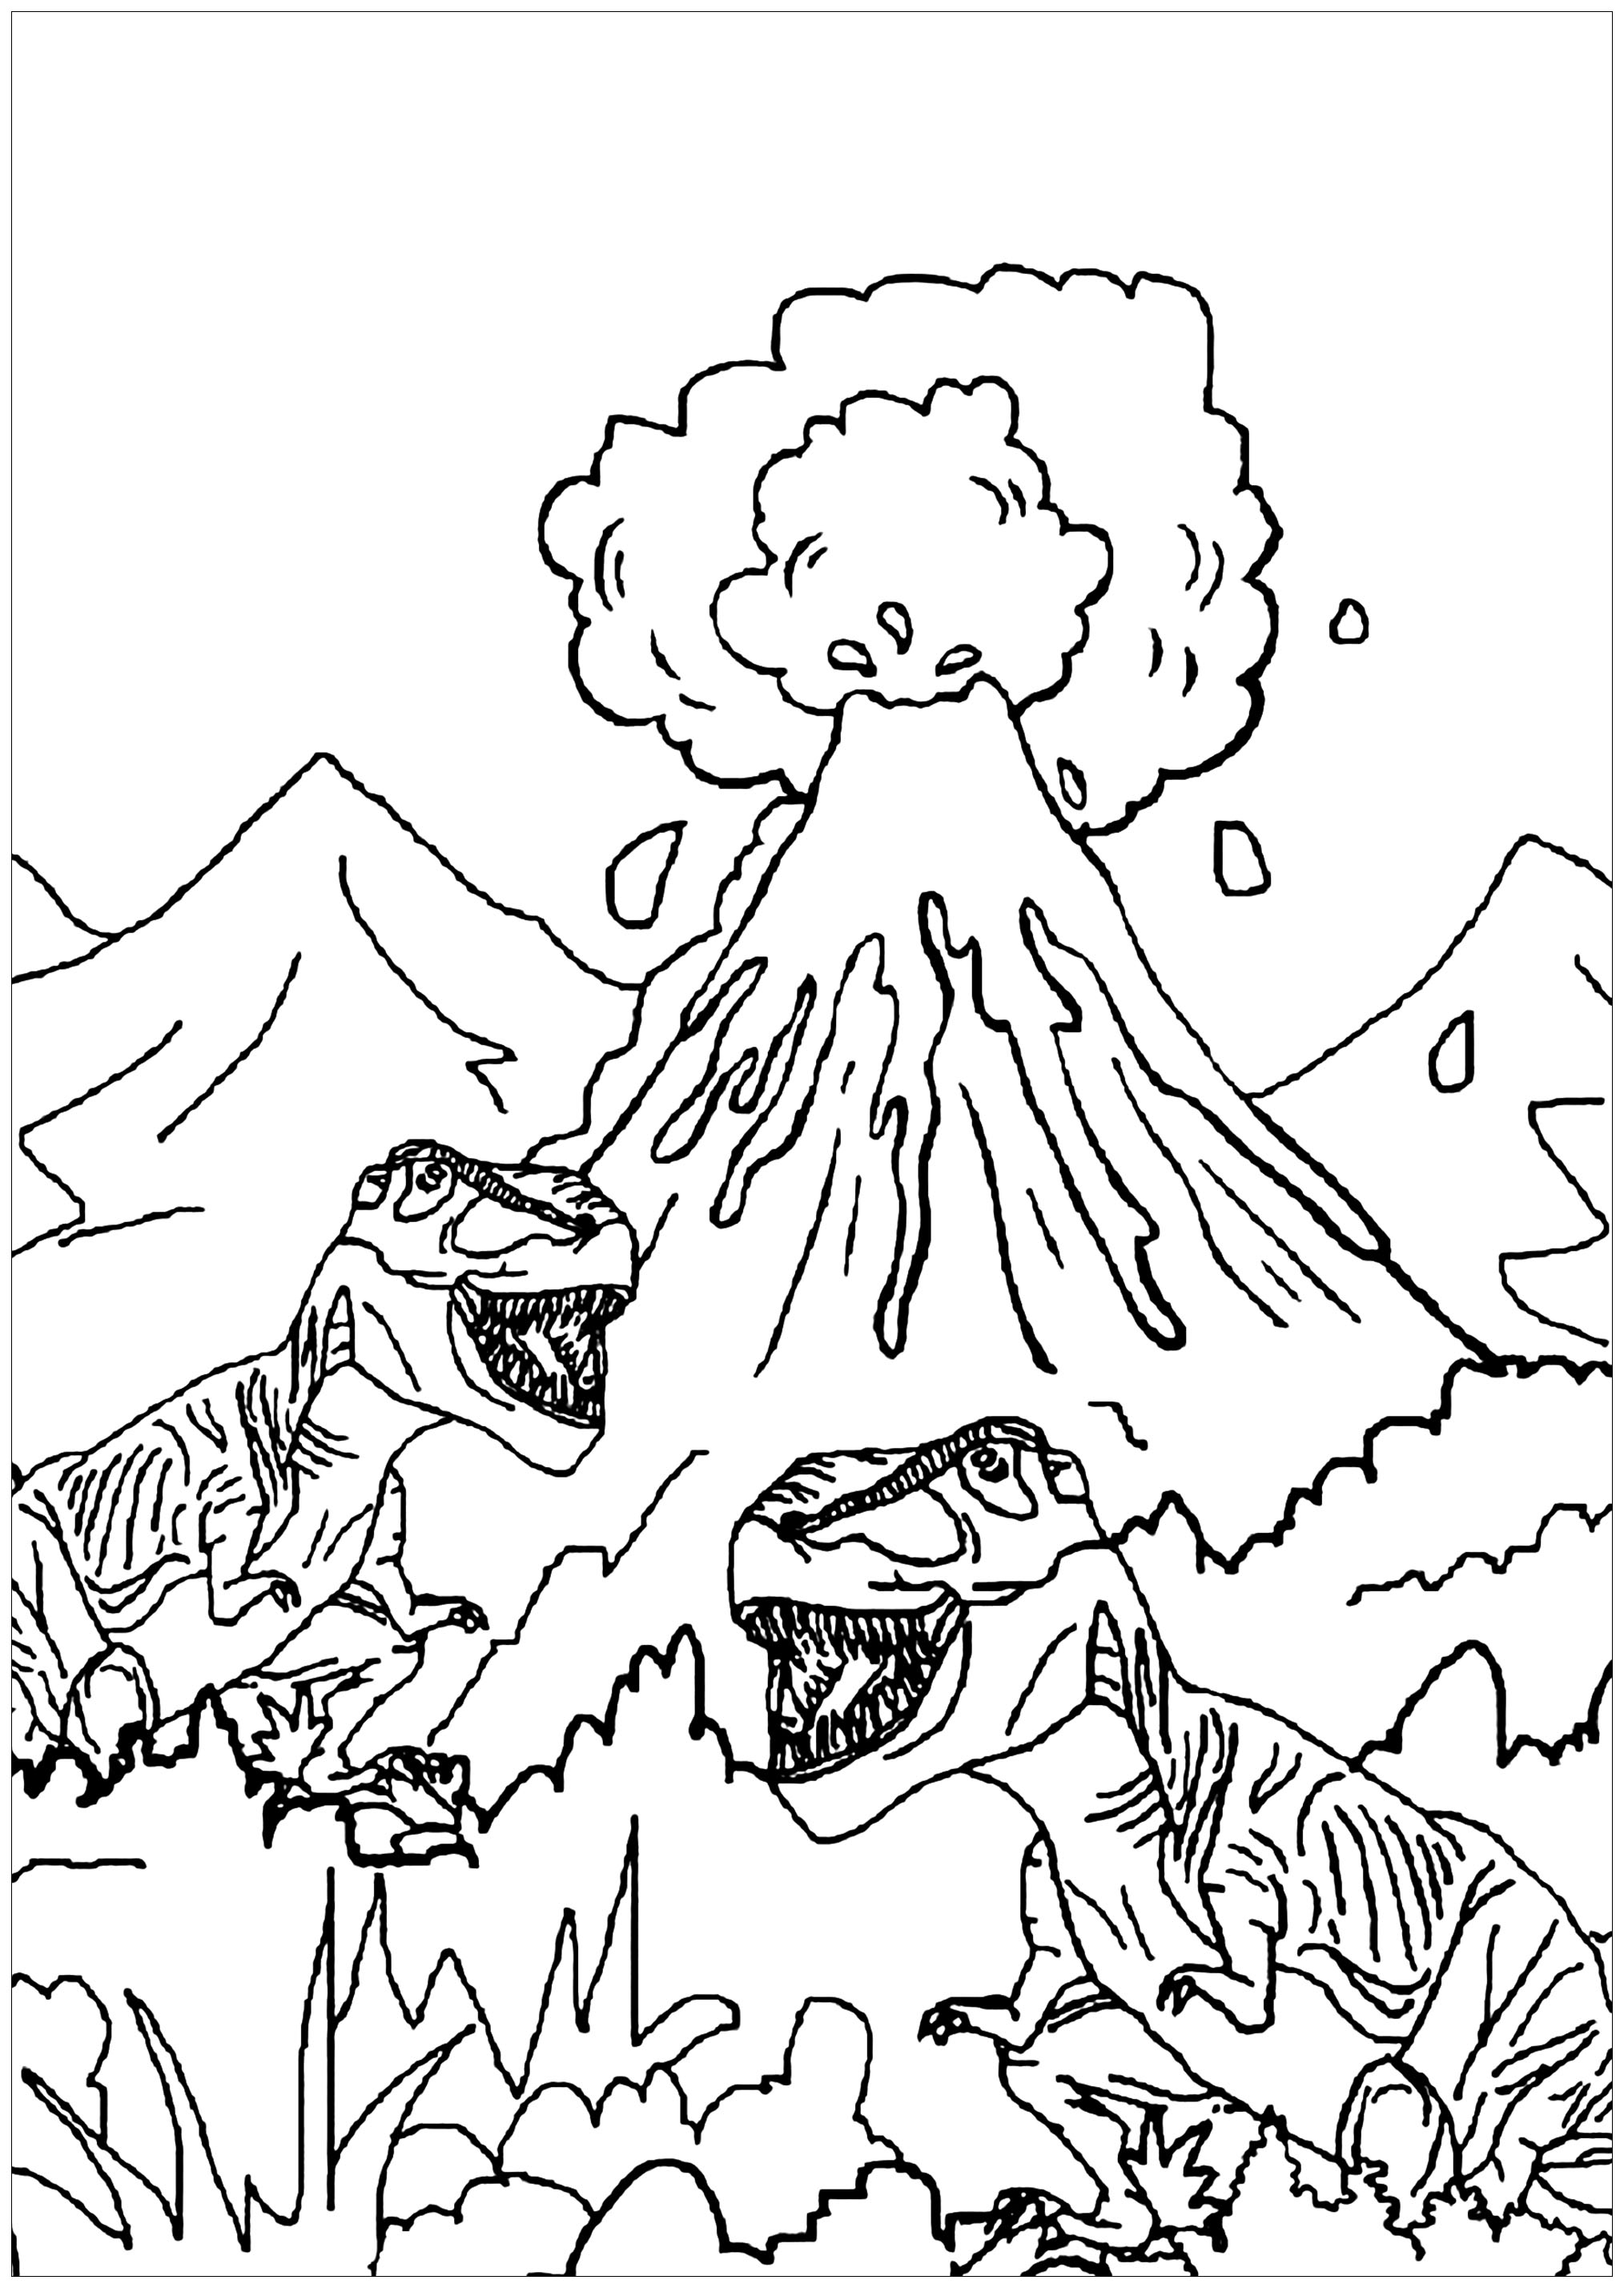 Dinosaurs To Print For Free : Dinosaurs And Volcano dedans Coloriage Dinosaure Raptor